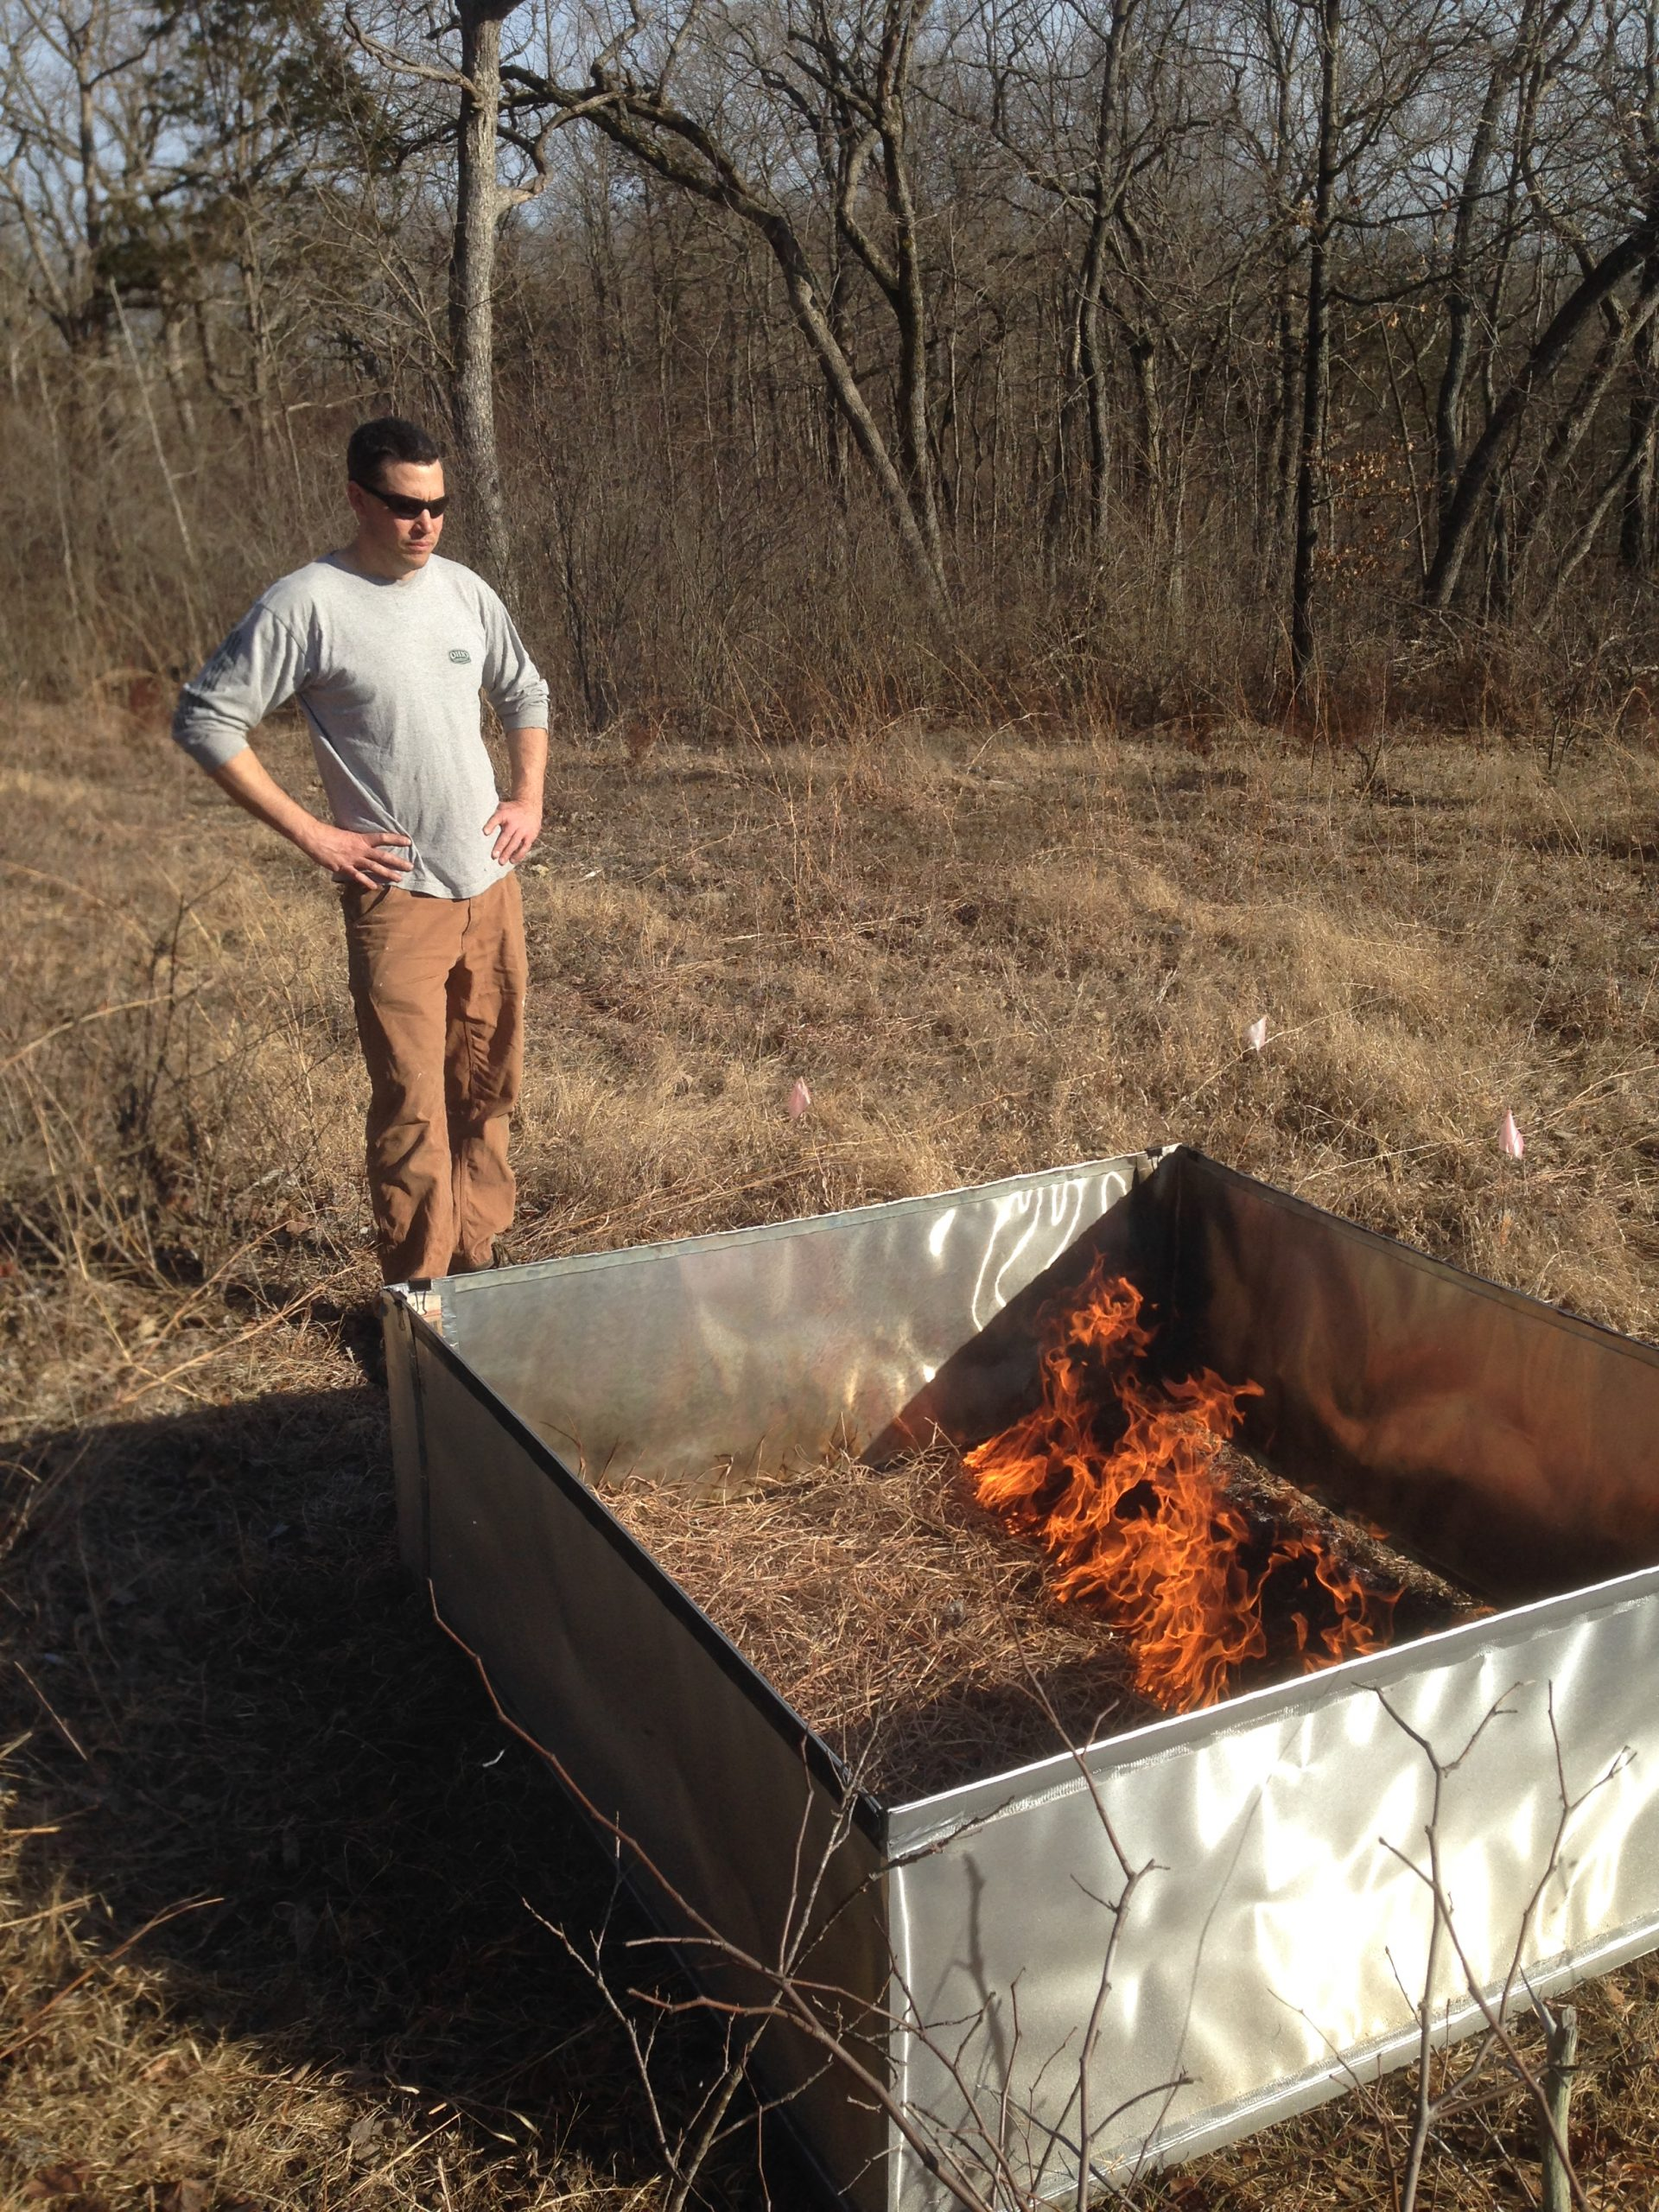 Dr. Albrecht oversees a fire as part of an experiment.